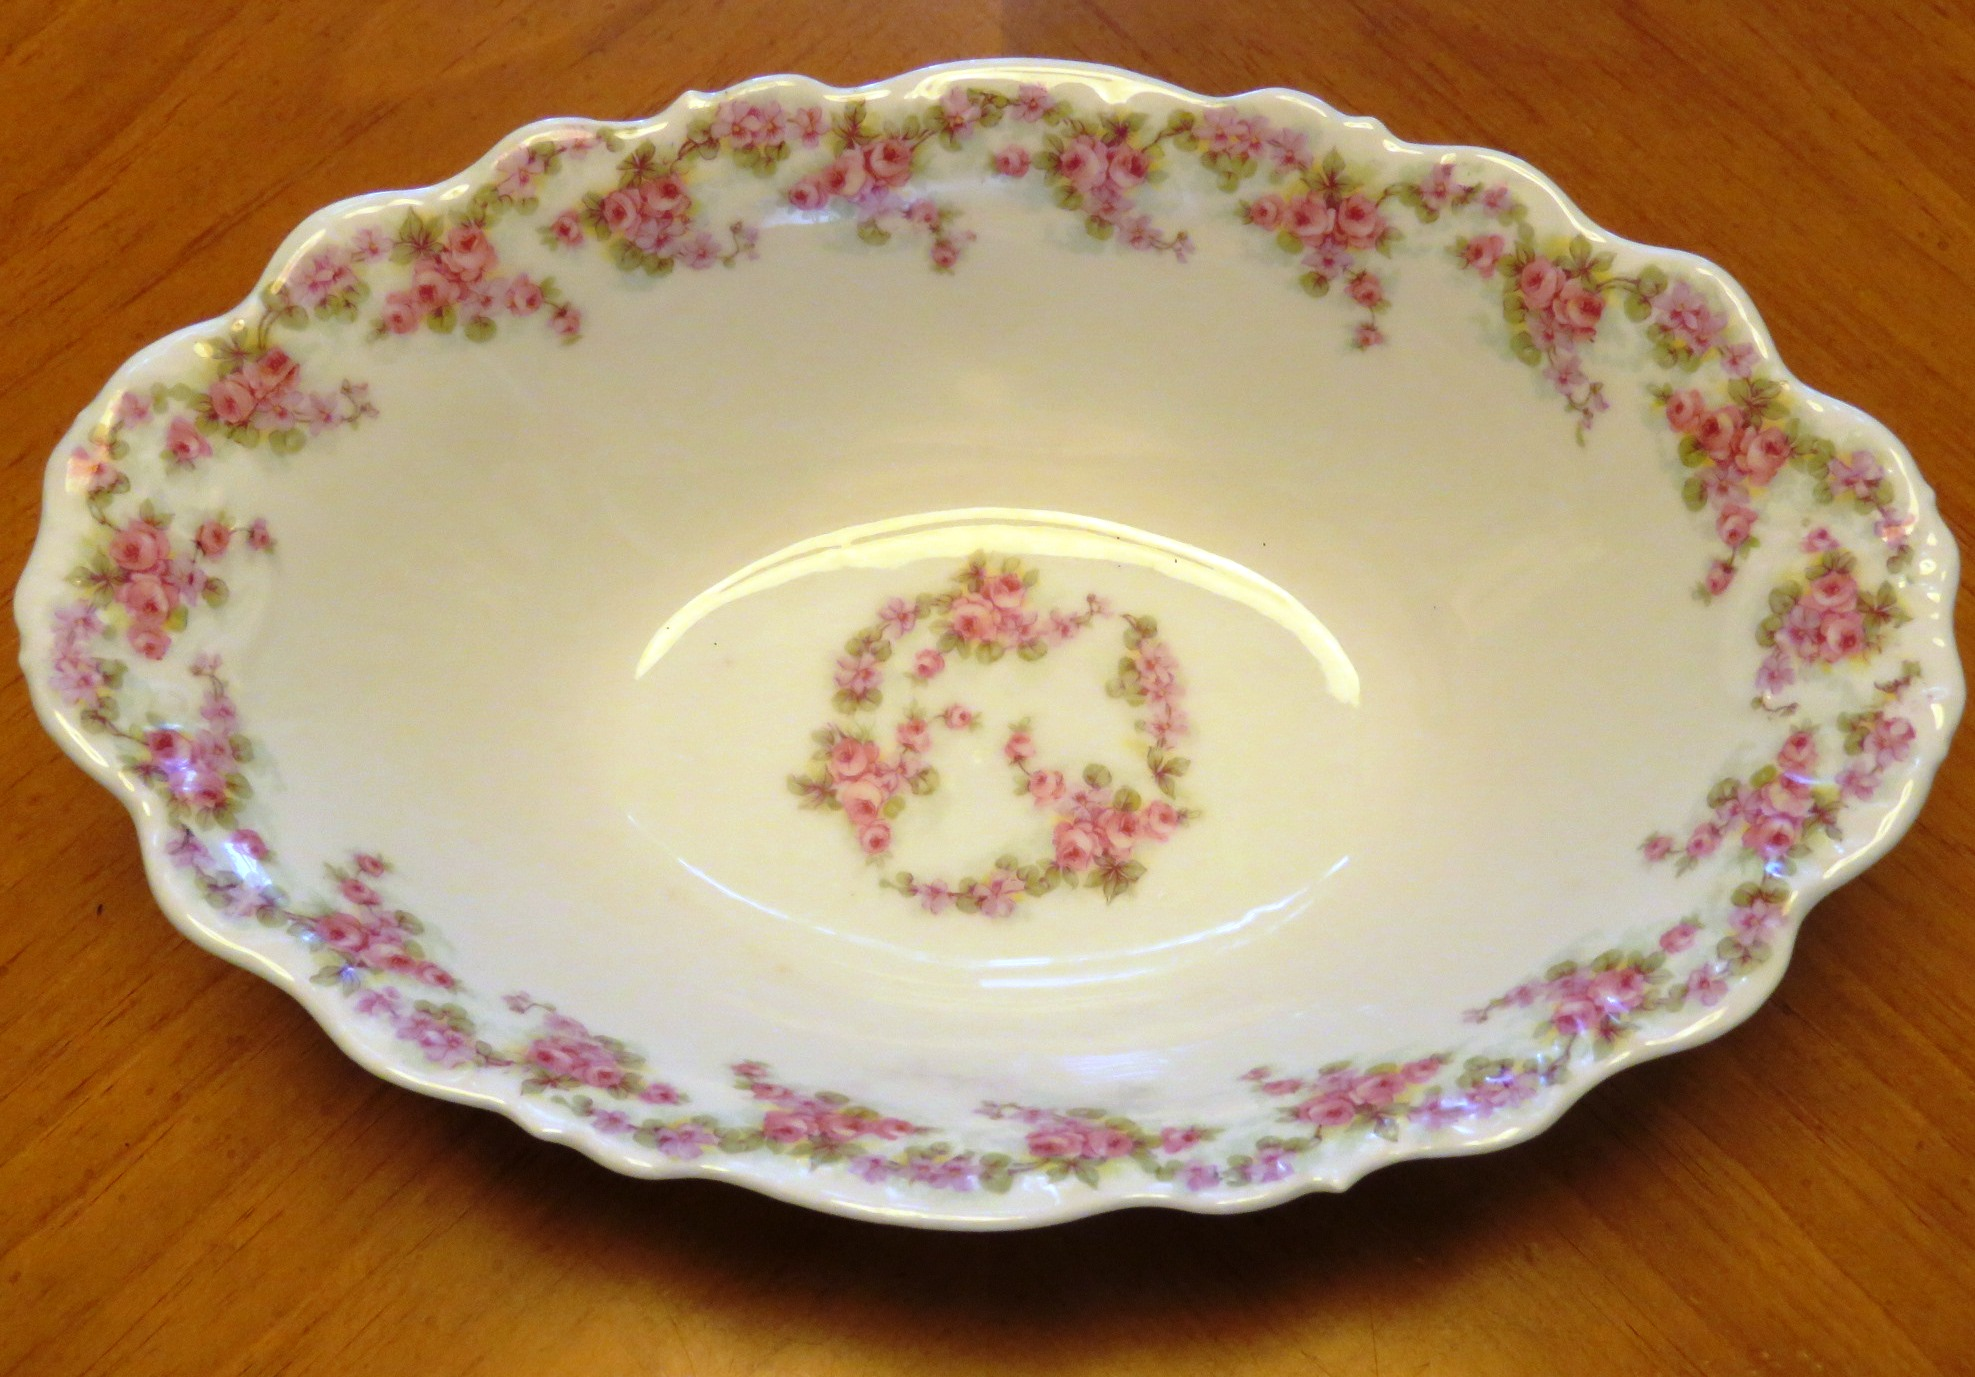 Antique Limoges Bridal Wreath Oval Dish Vegetable Serving Bowl Elite Works Roses (POT-194) in Pottery & Glass > Limoges